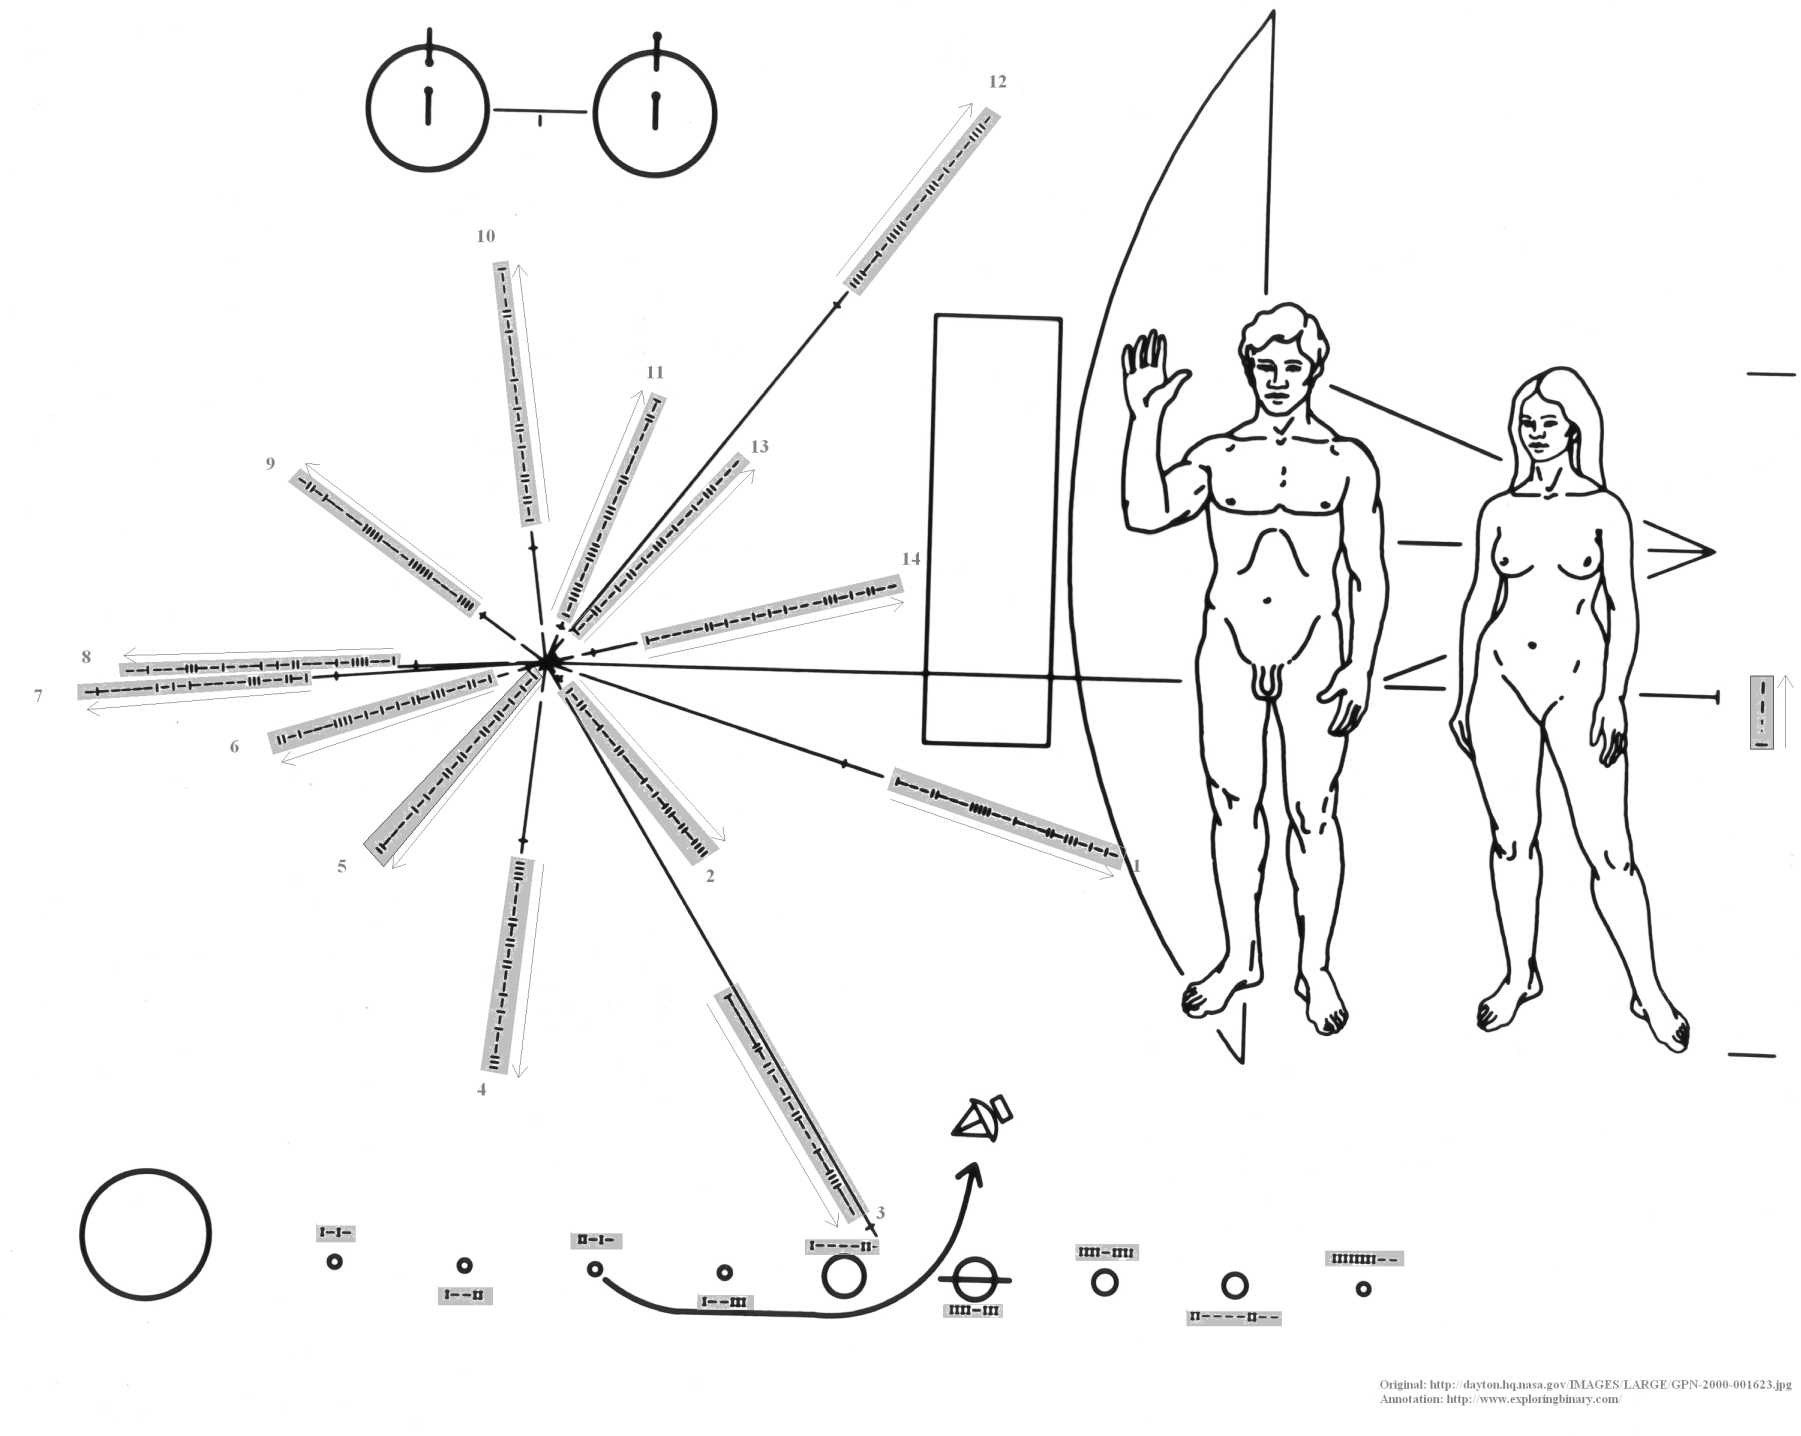 Binary Code On The Pioneer 10 Spacecraft